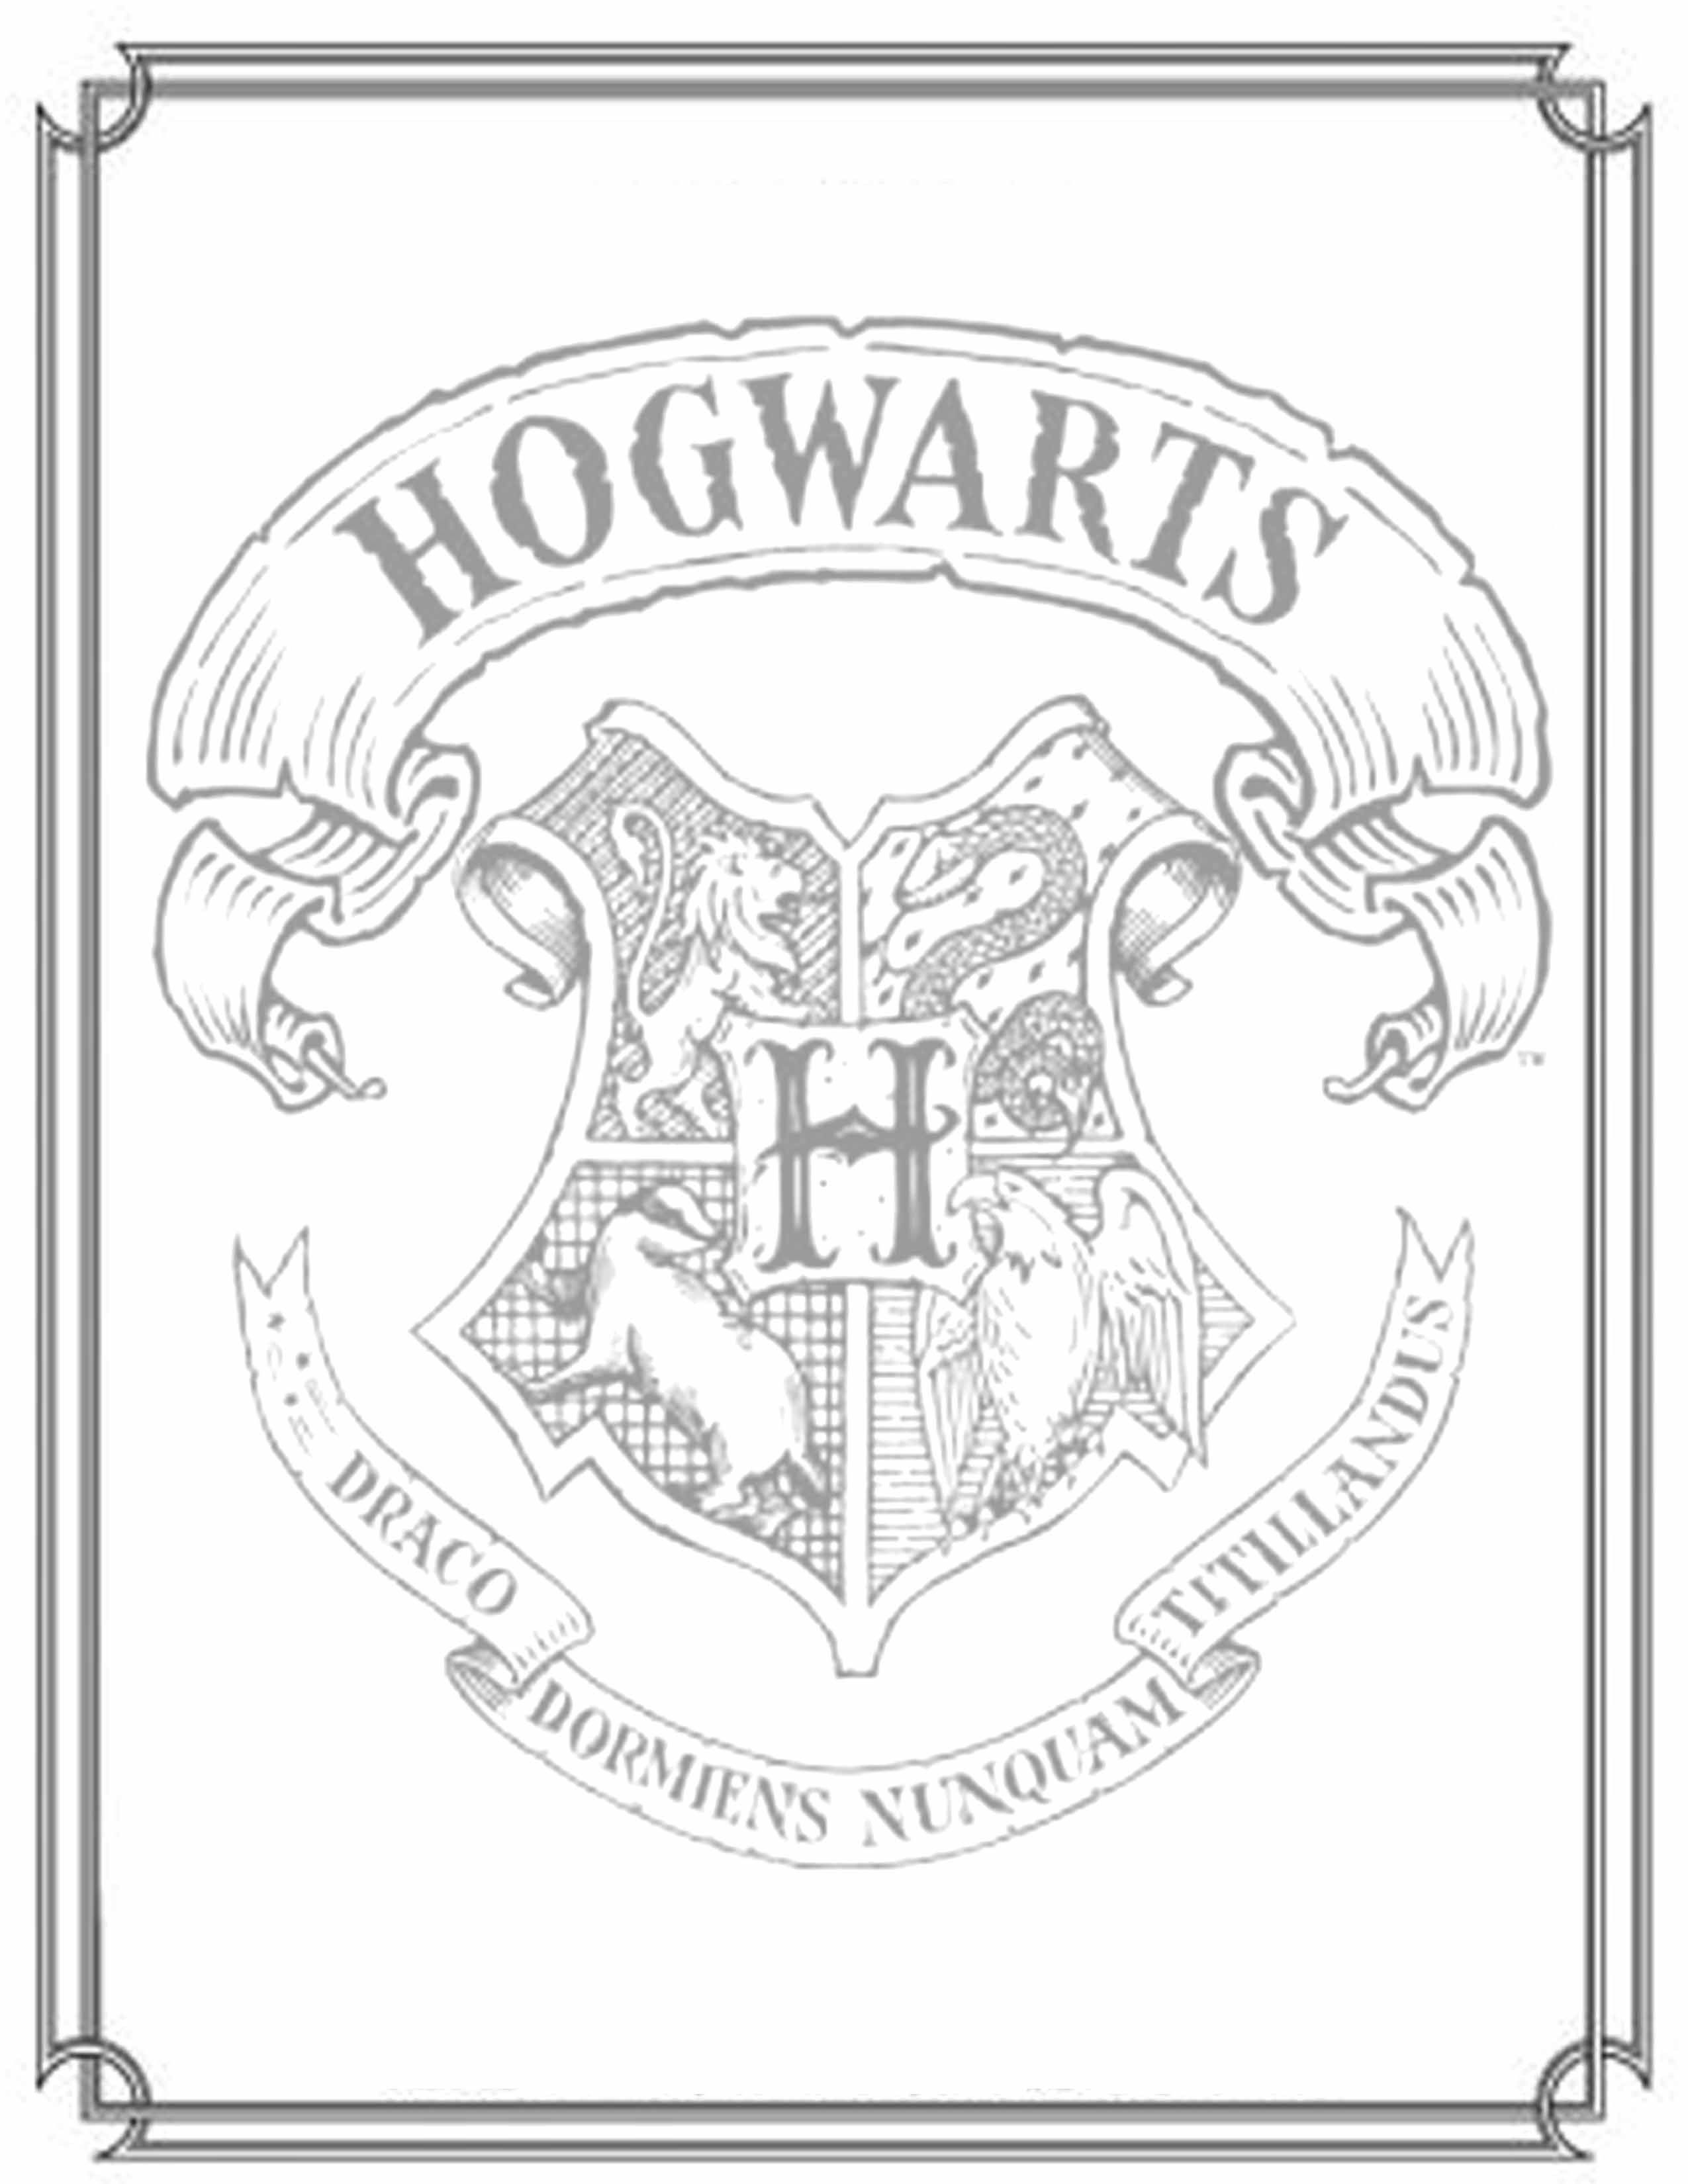 Harry Potter Coloring Book Inspirational Fresh Printable Coloring Pages Harry Potter Harry Potter Coloring Pages Harry Potter Colors Harry Potter Coloring Book